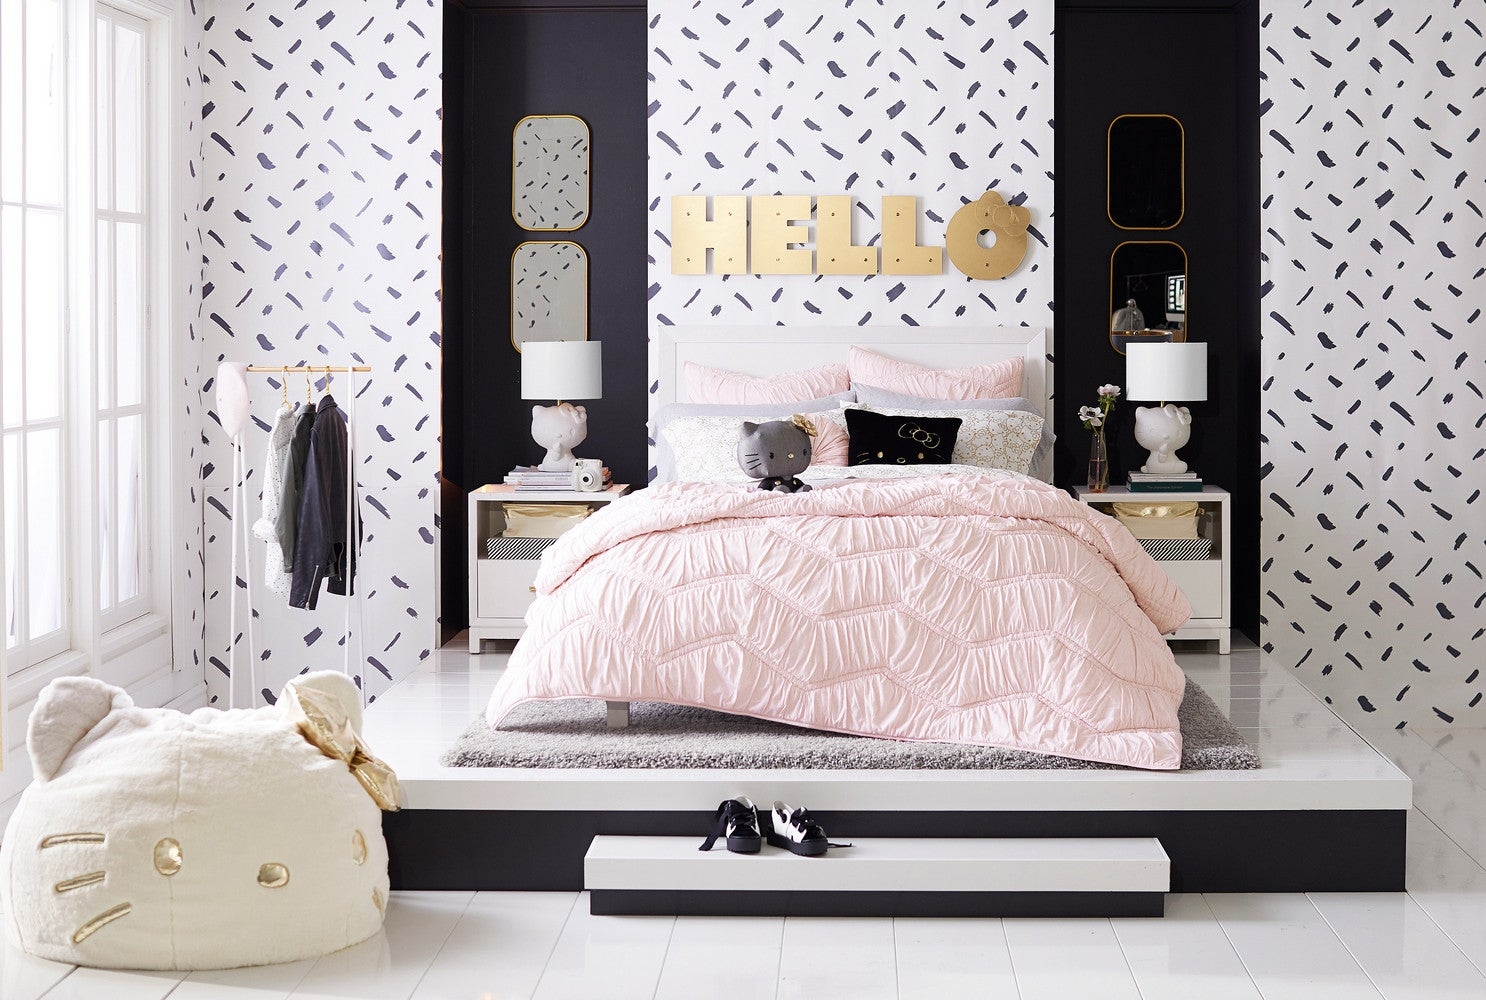 Pottery barn collaboration with hello kitty pbteen - Pottery barn hello kitty ...